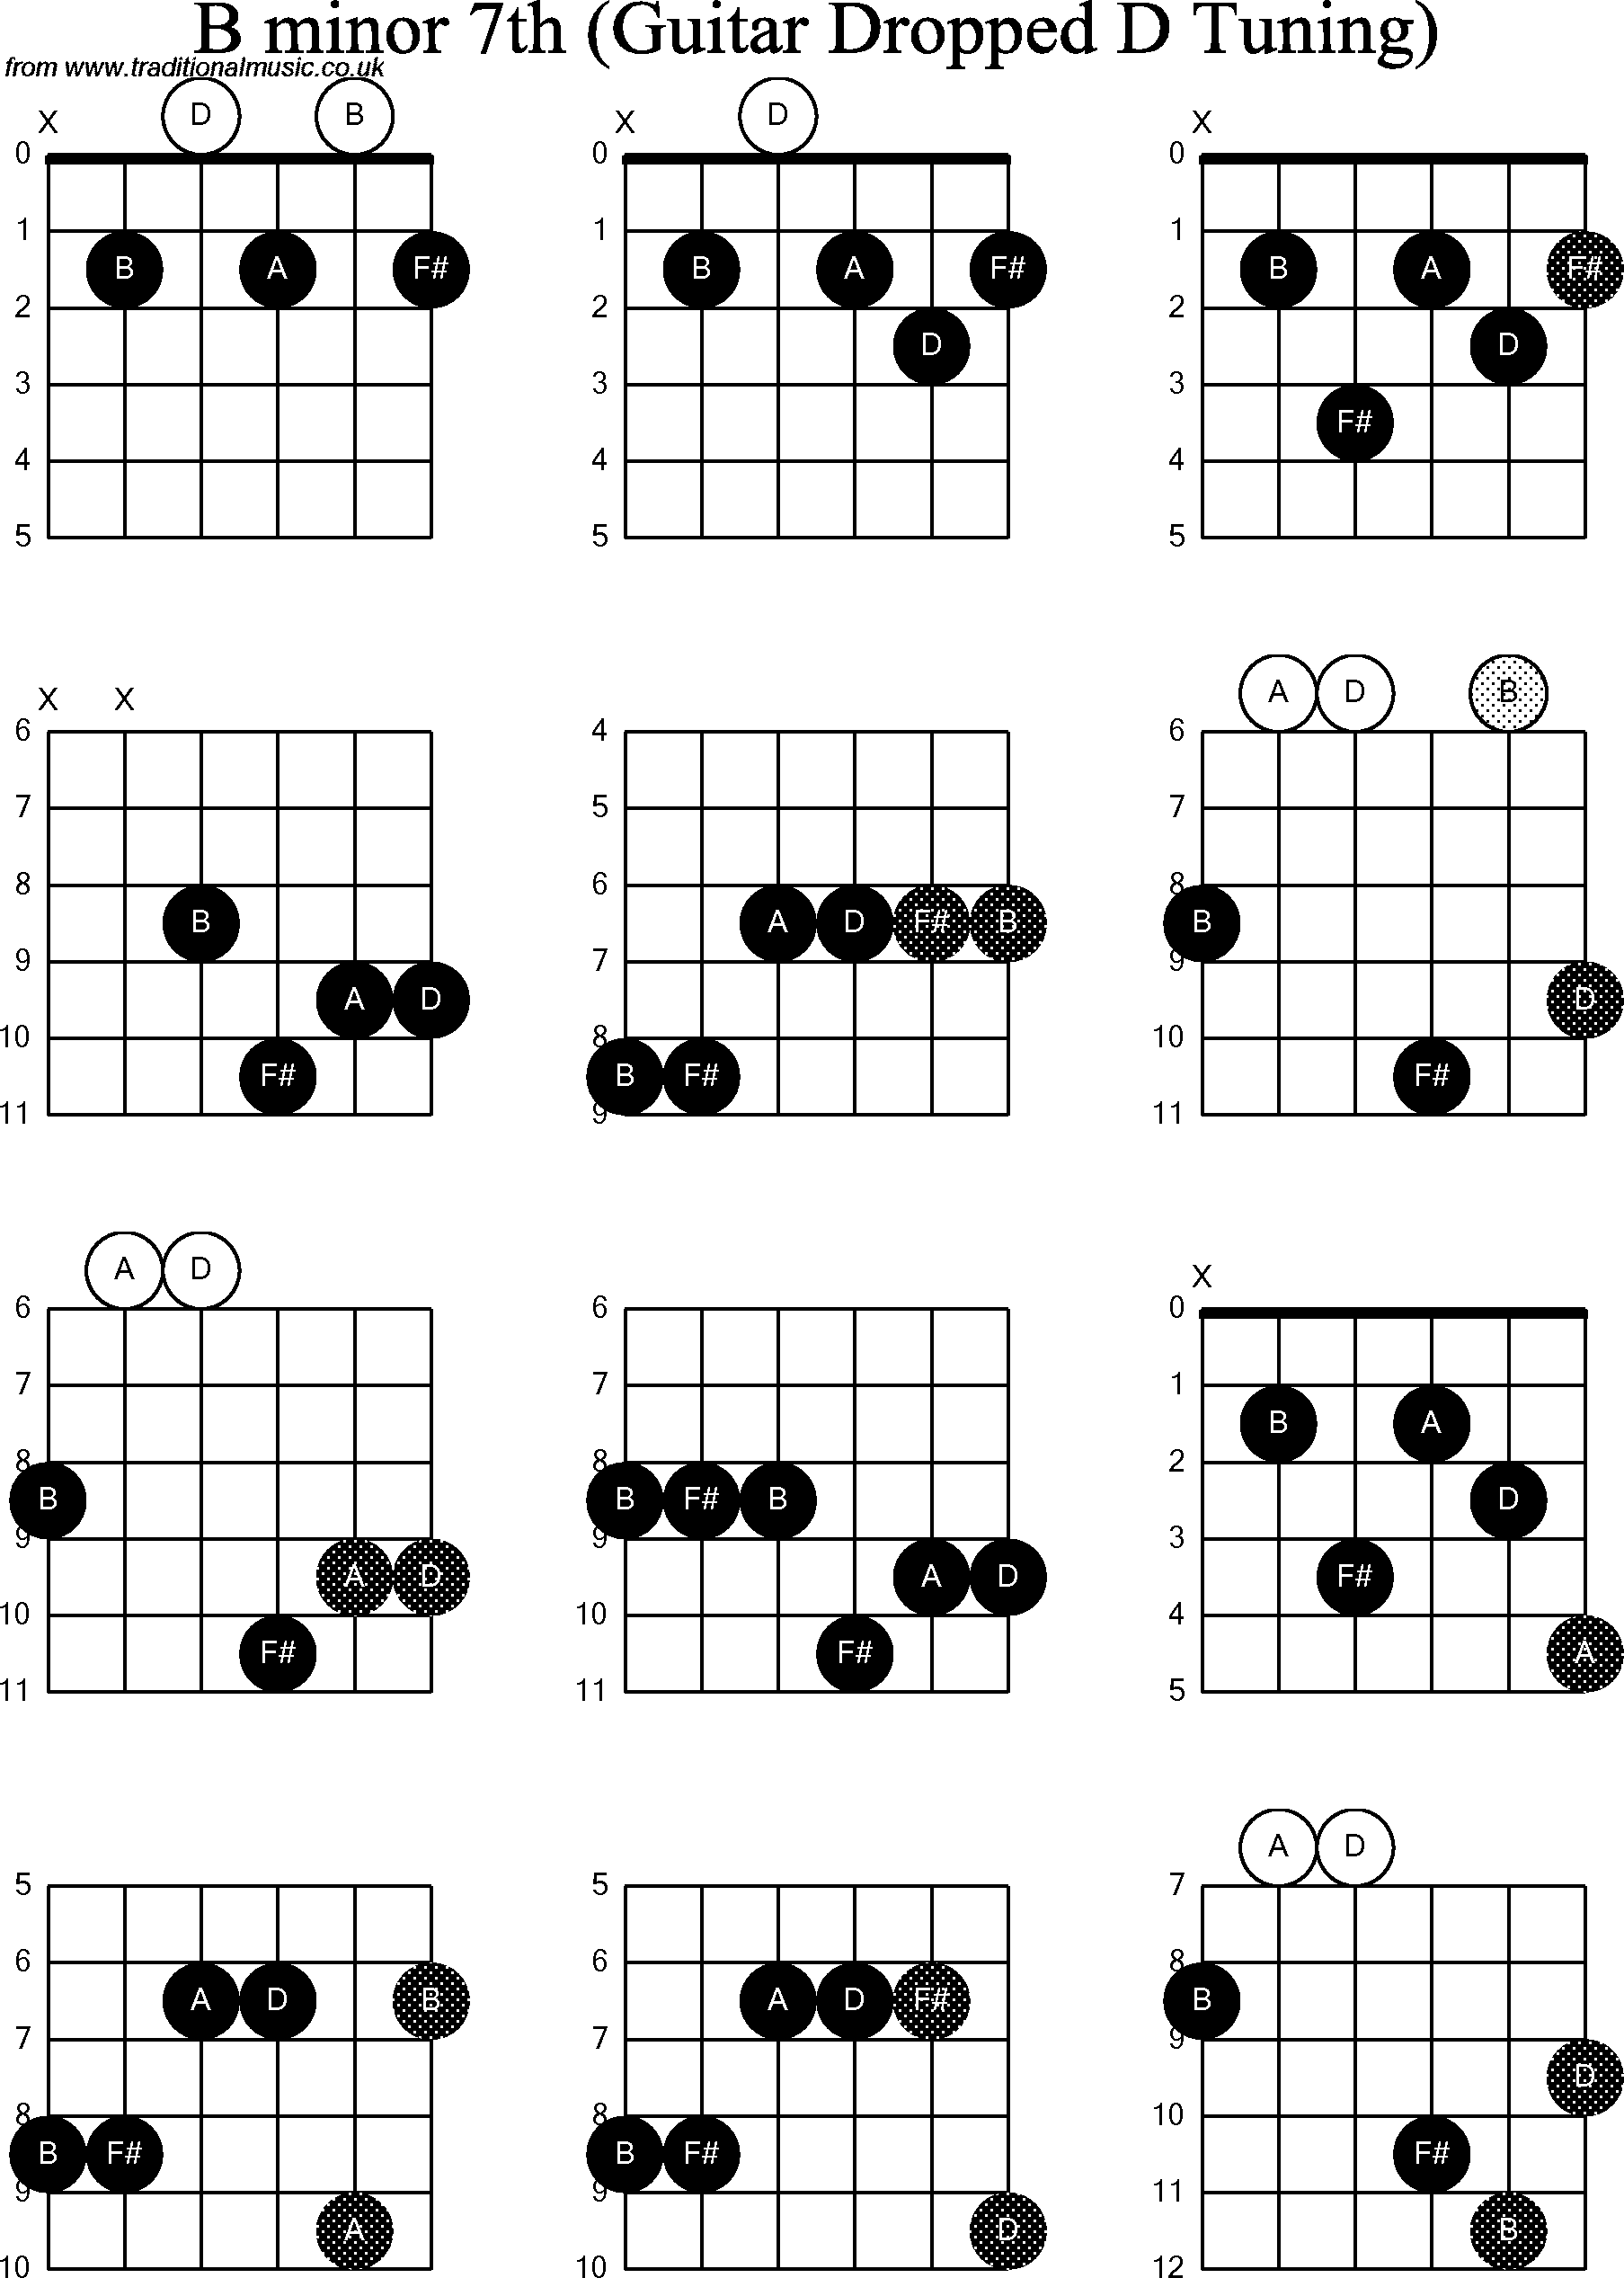 Chord diagrams for dropped d guitardadgbe b minor7th chord diagrams for dropped d guitardadgbe b minor7th hexwebz Gallery